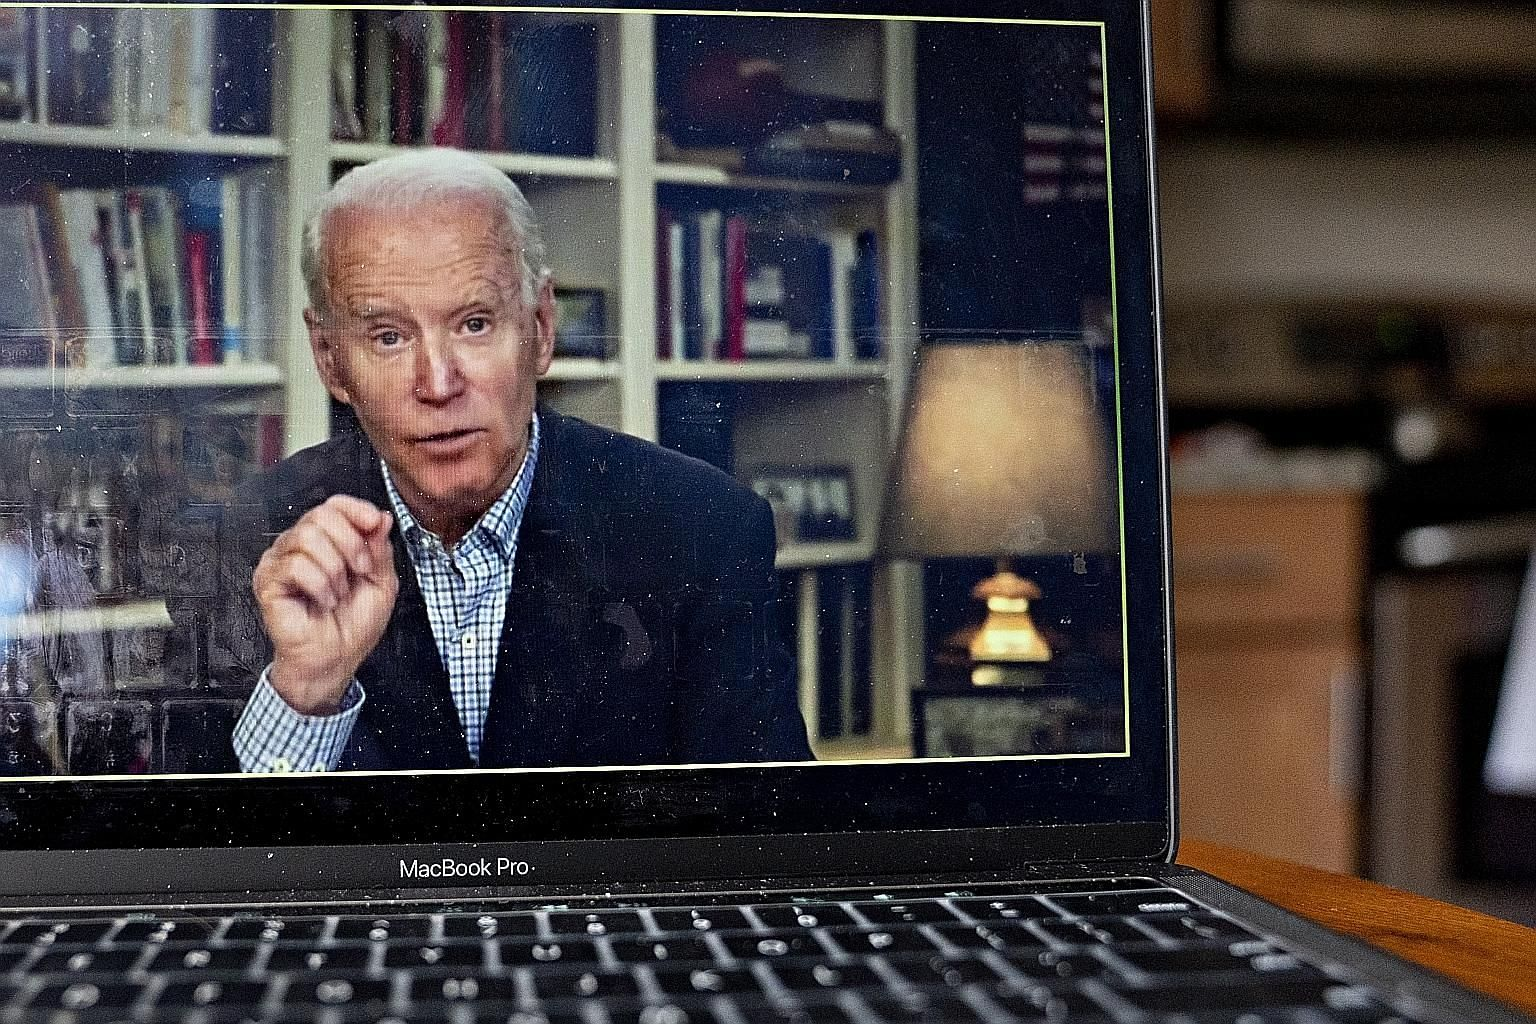 Democratic presidential candidate Joe Biden speaking during a virtual press briefing last Wednesday. Desperate to stay relevant, Mr Biden and his rival Bernie Sanders are participating in multiple webcasts, including roundtables with their respective